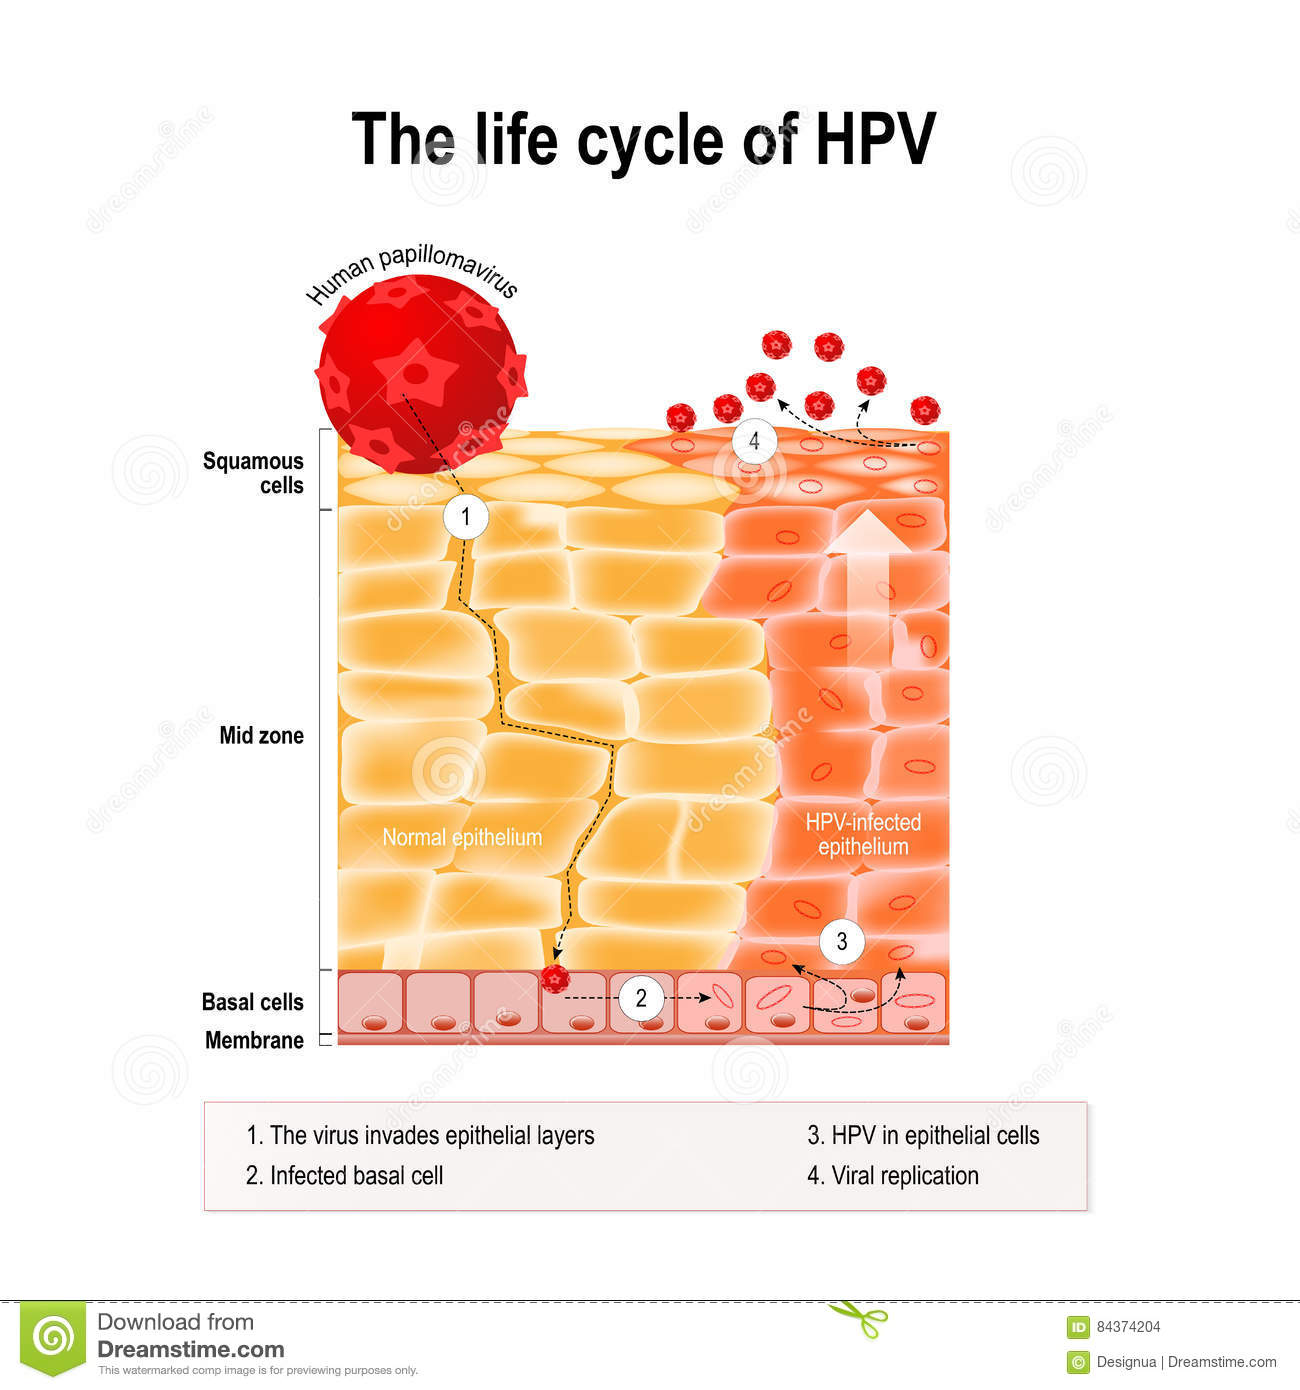 hight resolution of life cycle of hpv in the human epithelium hpv human papillomavirus infection which causes warts and cervical cancer carcinoma of cervix malignant